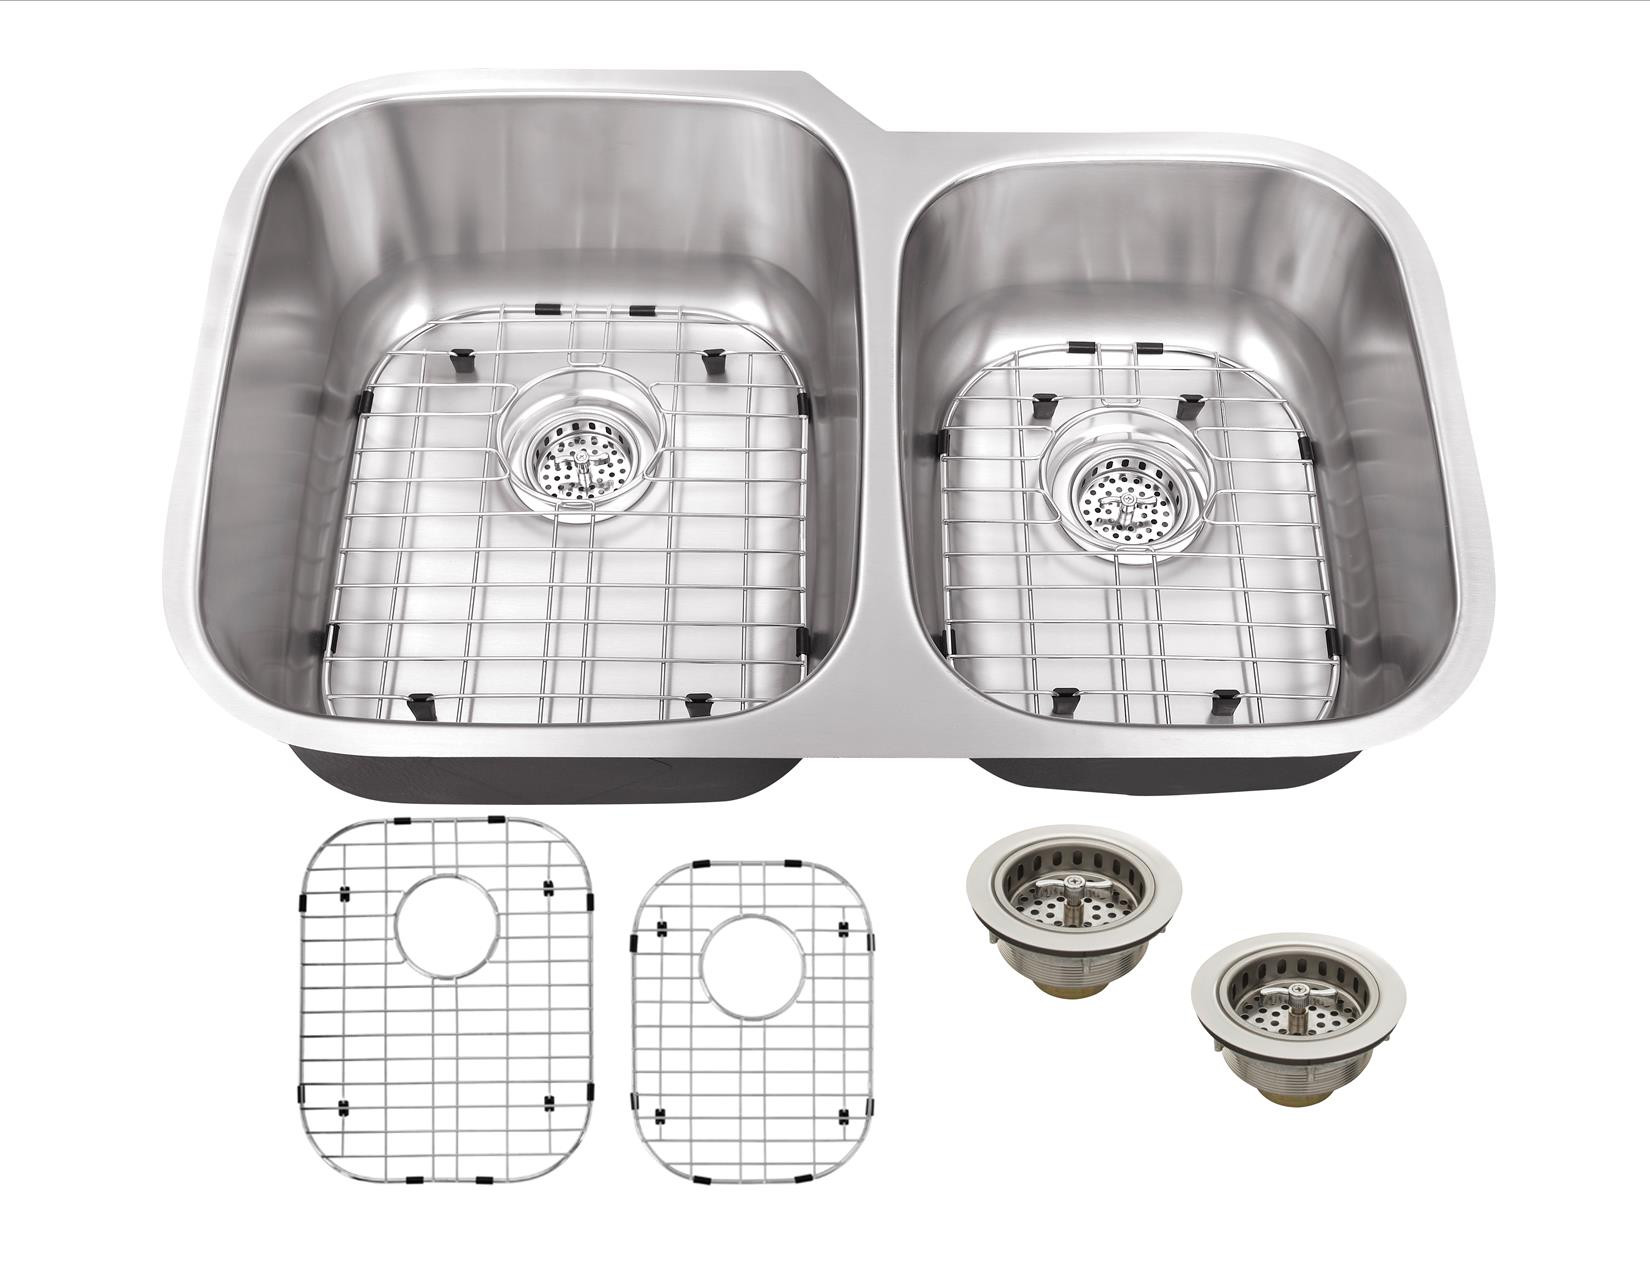 Cahaba CA121232 16 Gauge Double KitchenSink w Grid Set and Drain Assemblies